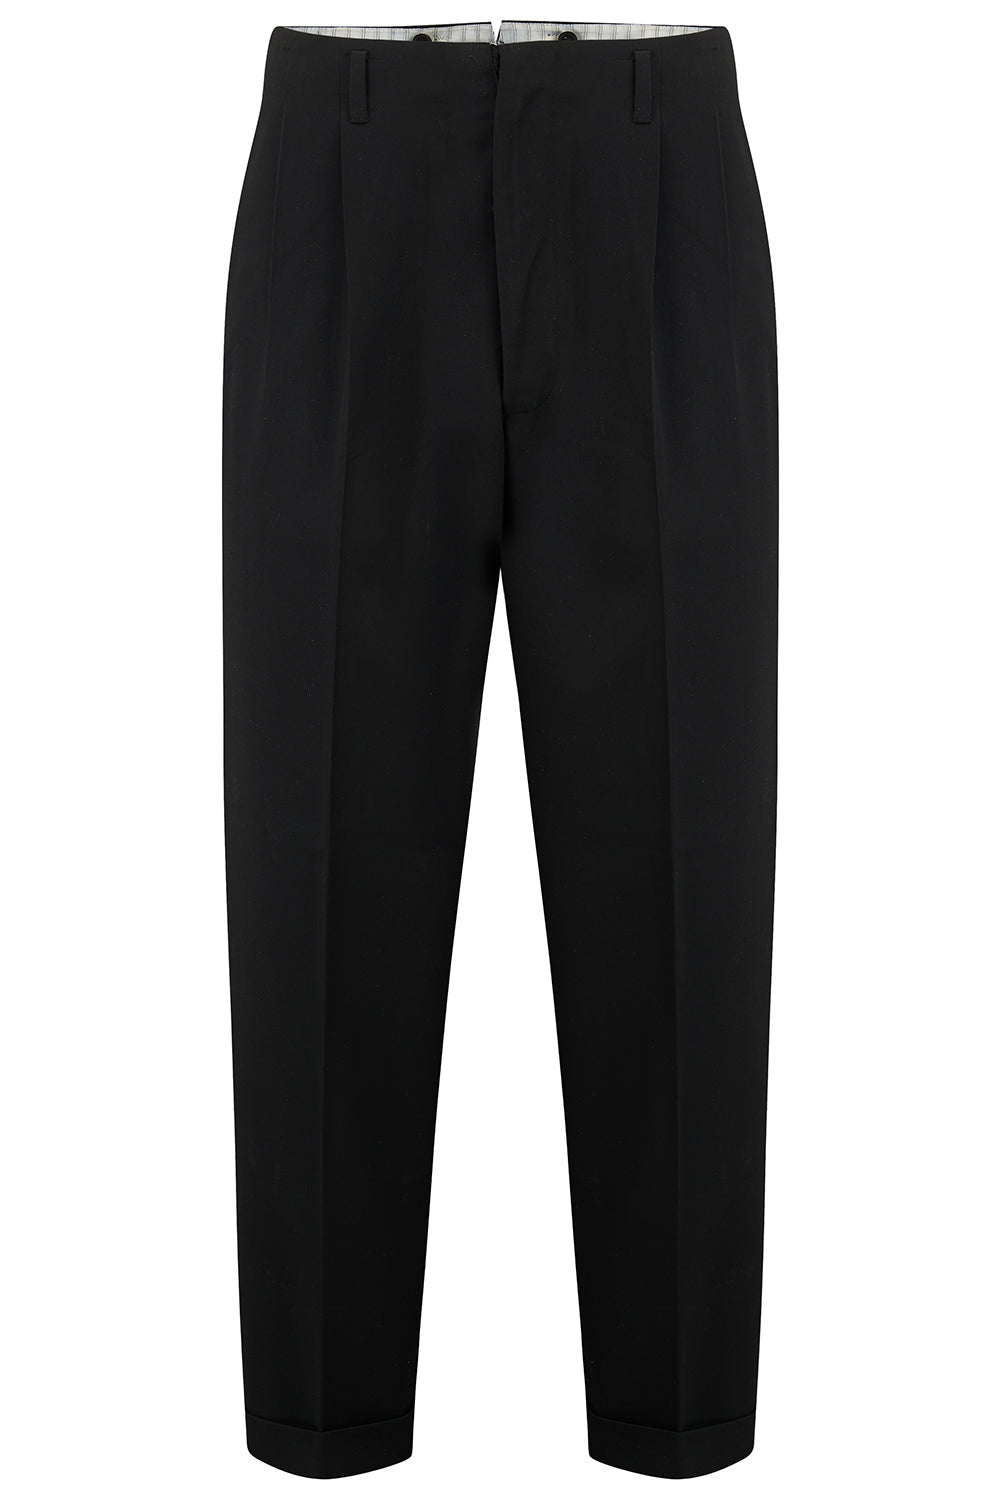 Mens 1950's Peg Trousers Classic Vintage Style by The Seamstress of Bloomsbury